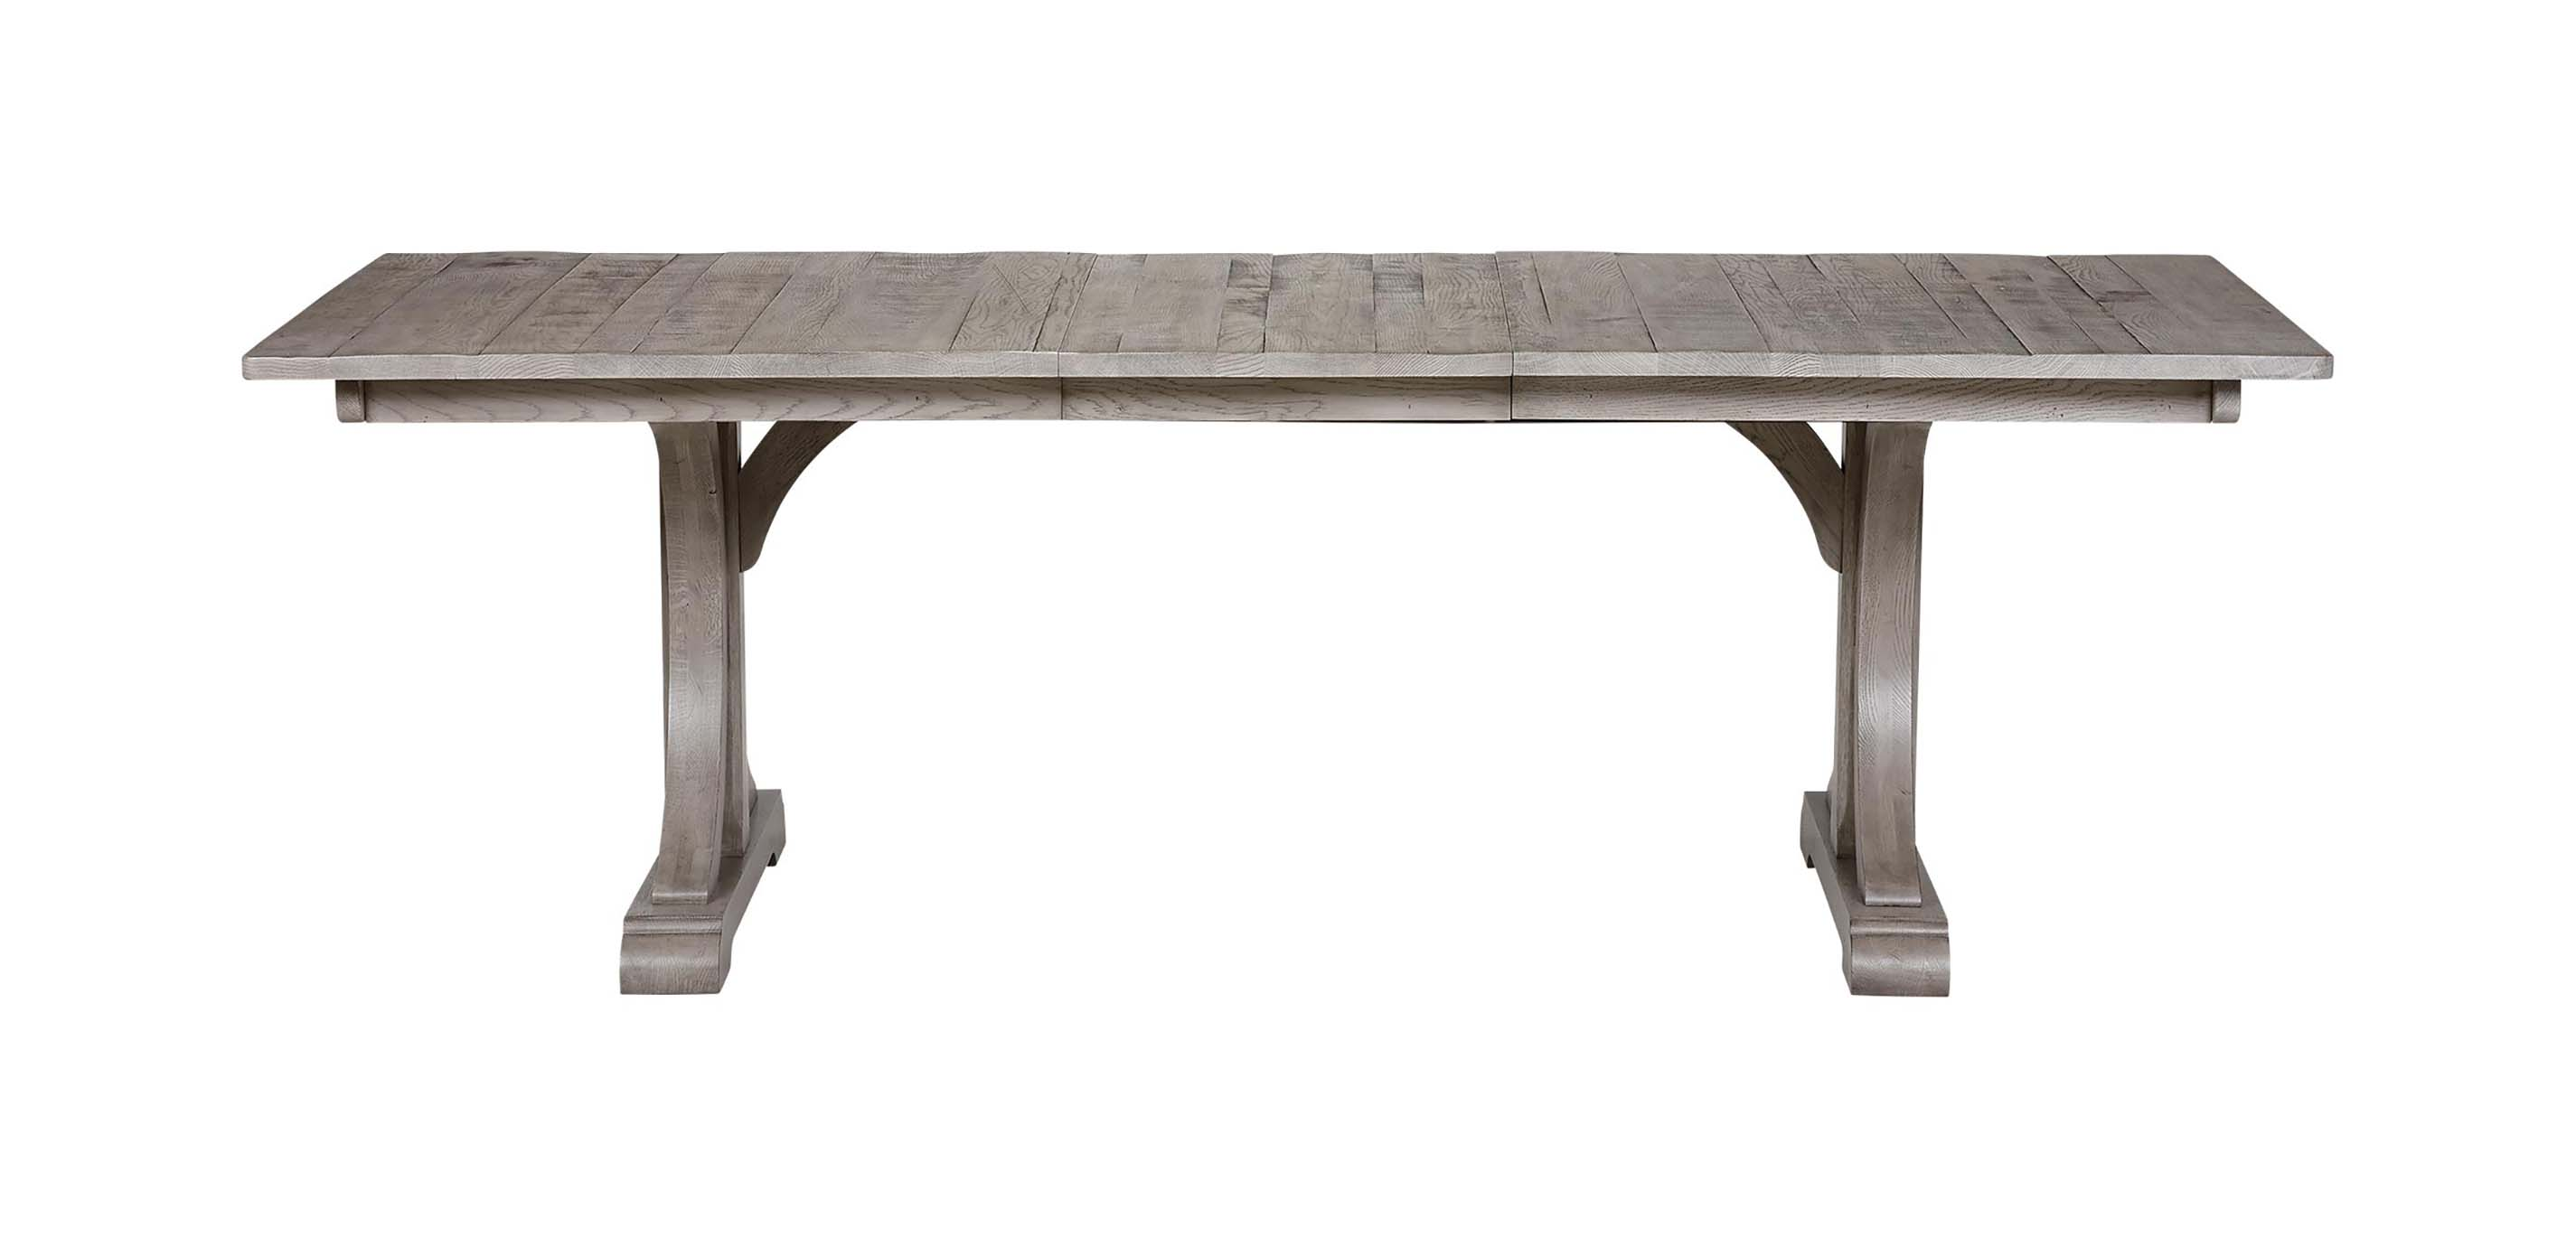 Corin extension trestle dining table dining tables Trestle dining table